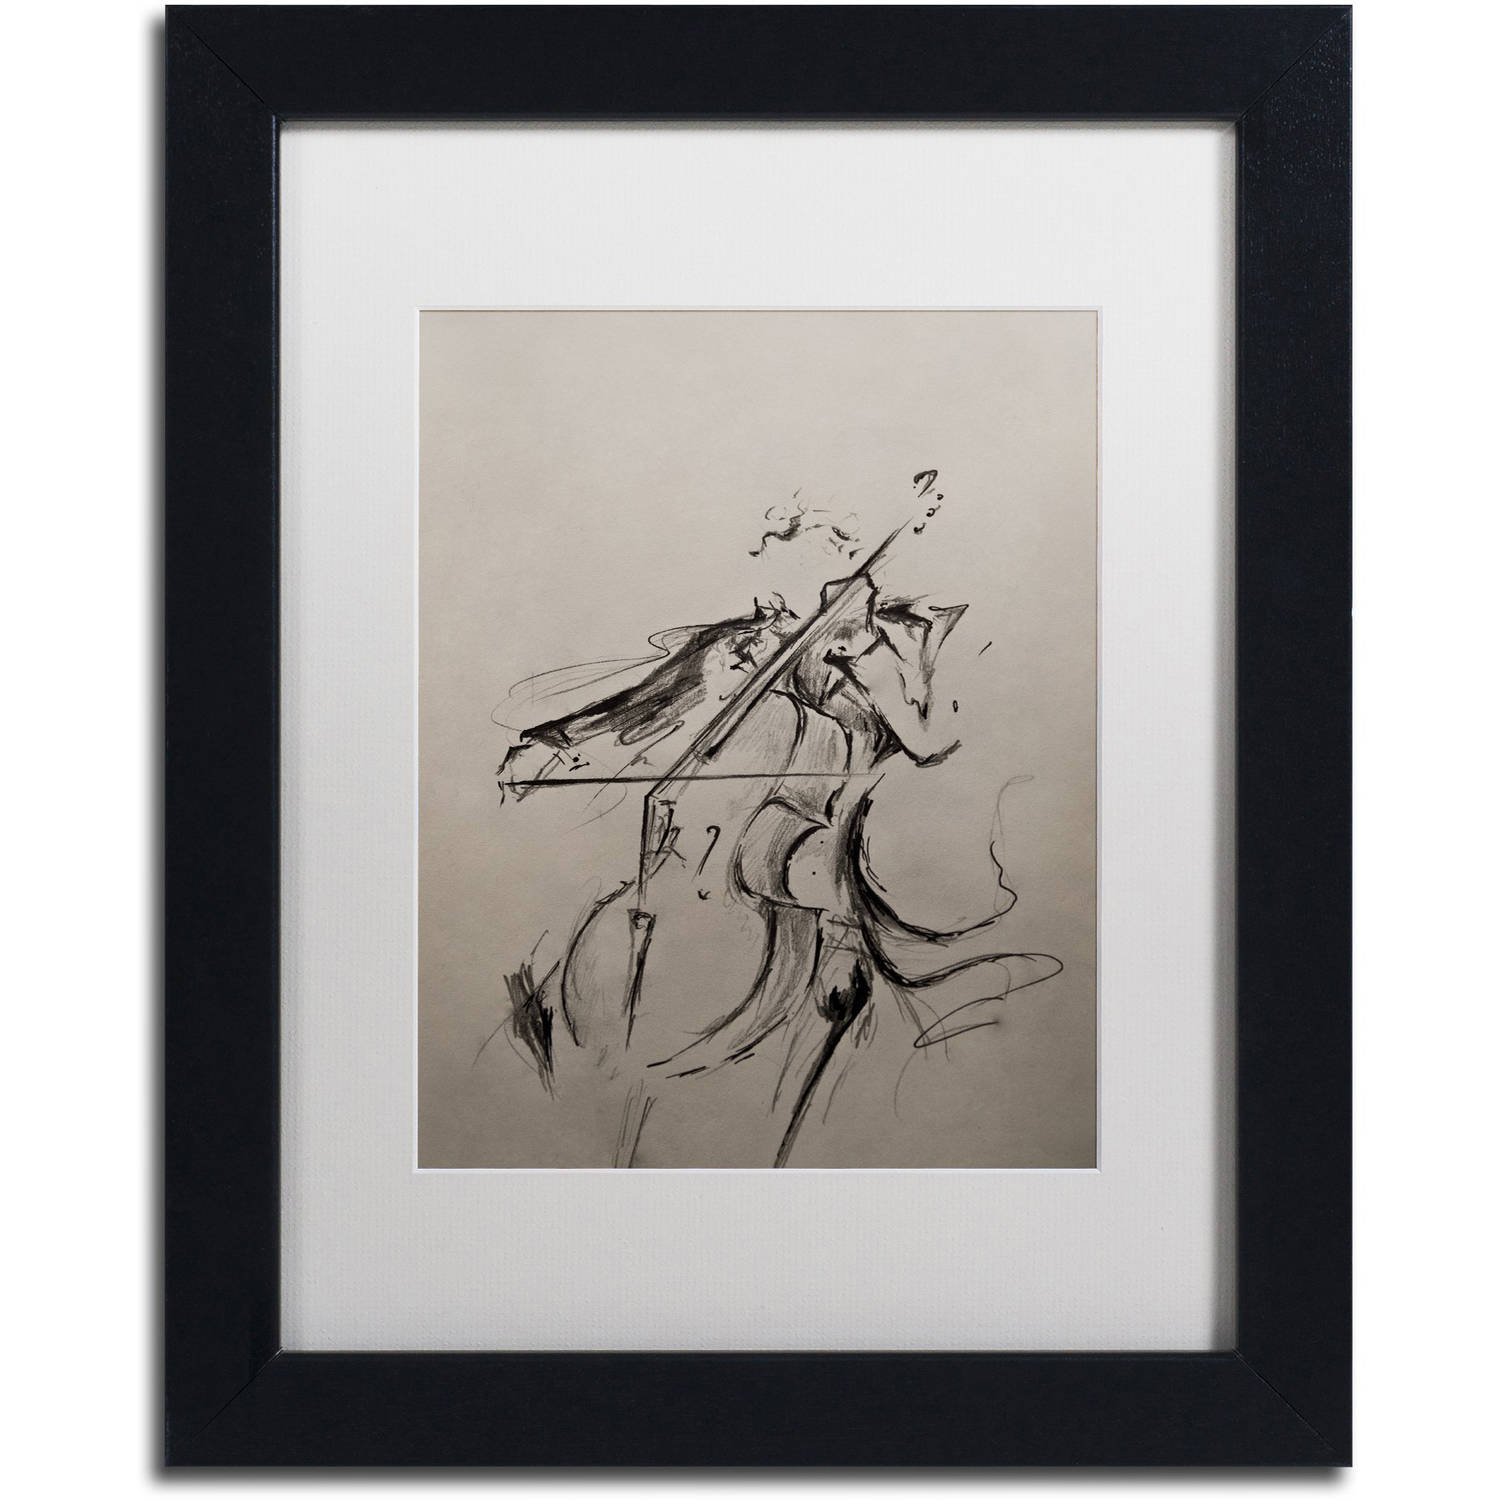 Trademark Fine Art 'The Cellist Sketch' Canvas Art by Marc Allante, White Matte, Black Frame